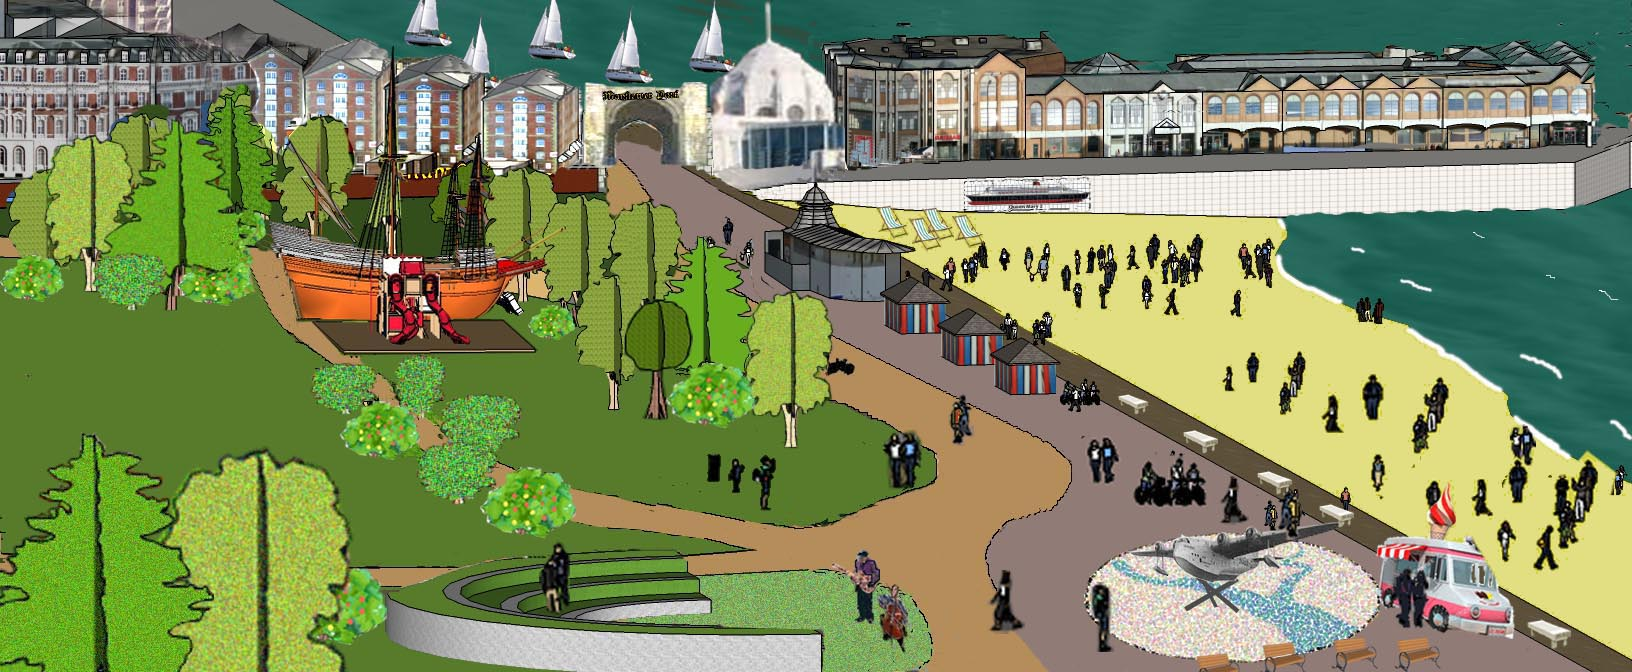 A possible vision for an accessible waterfront